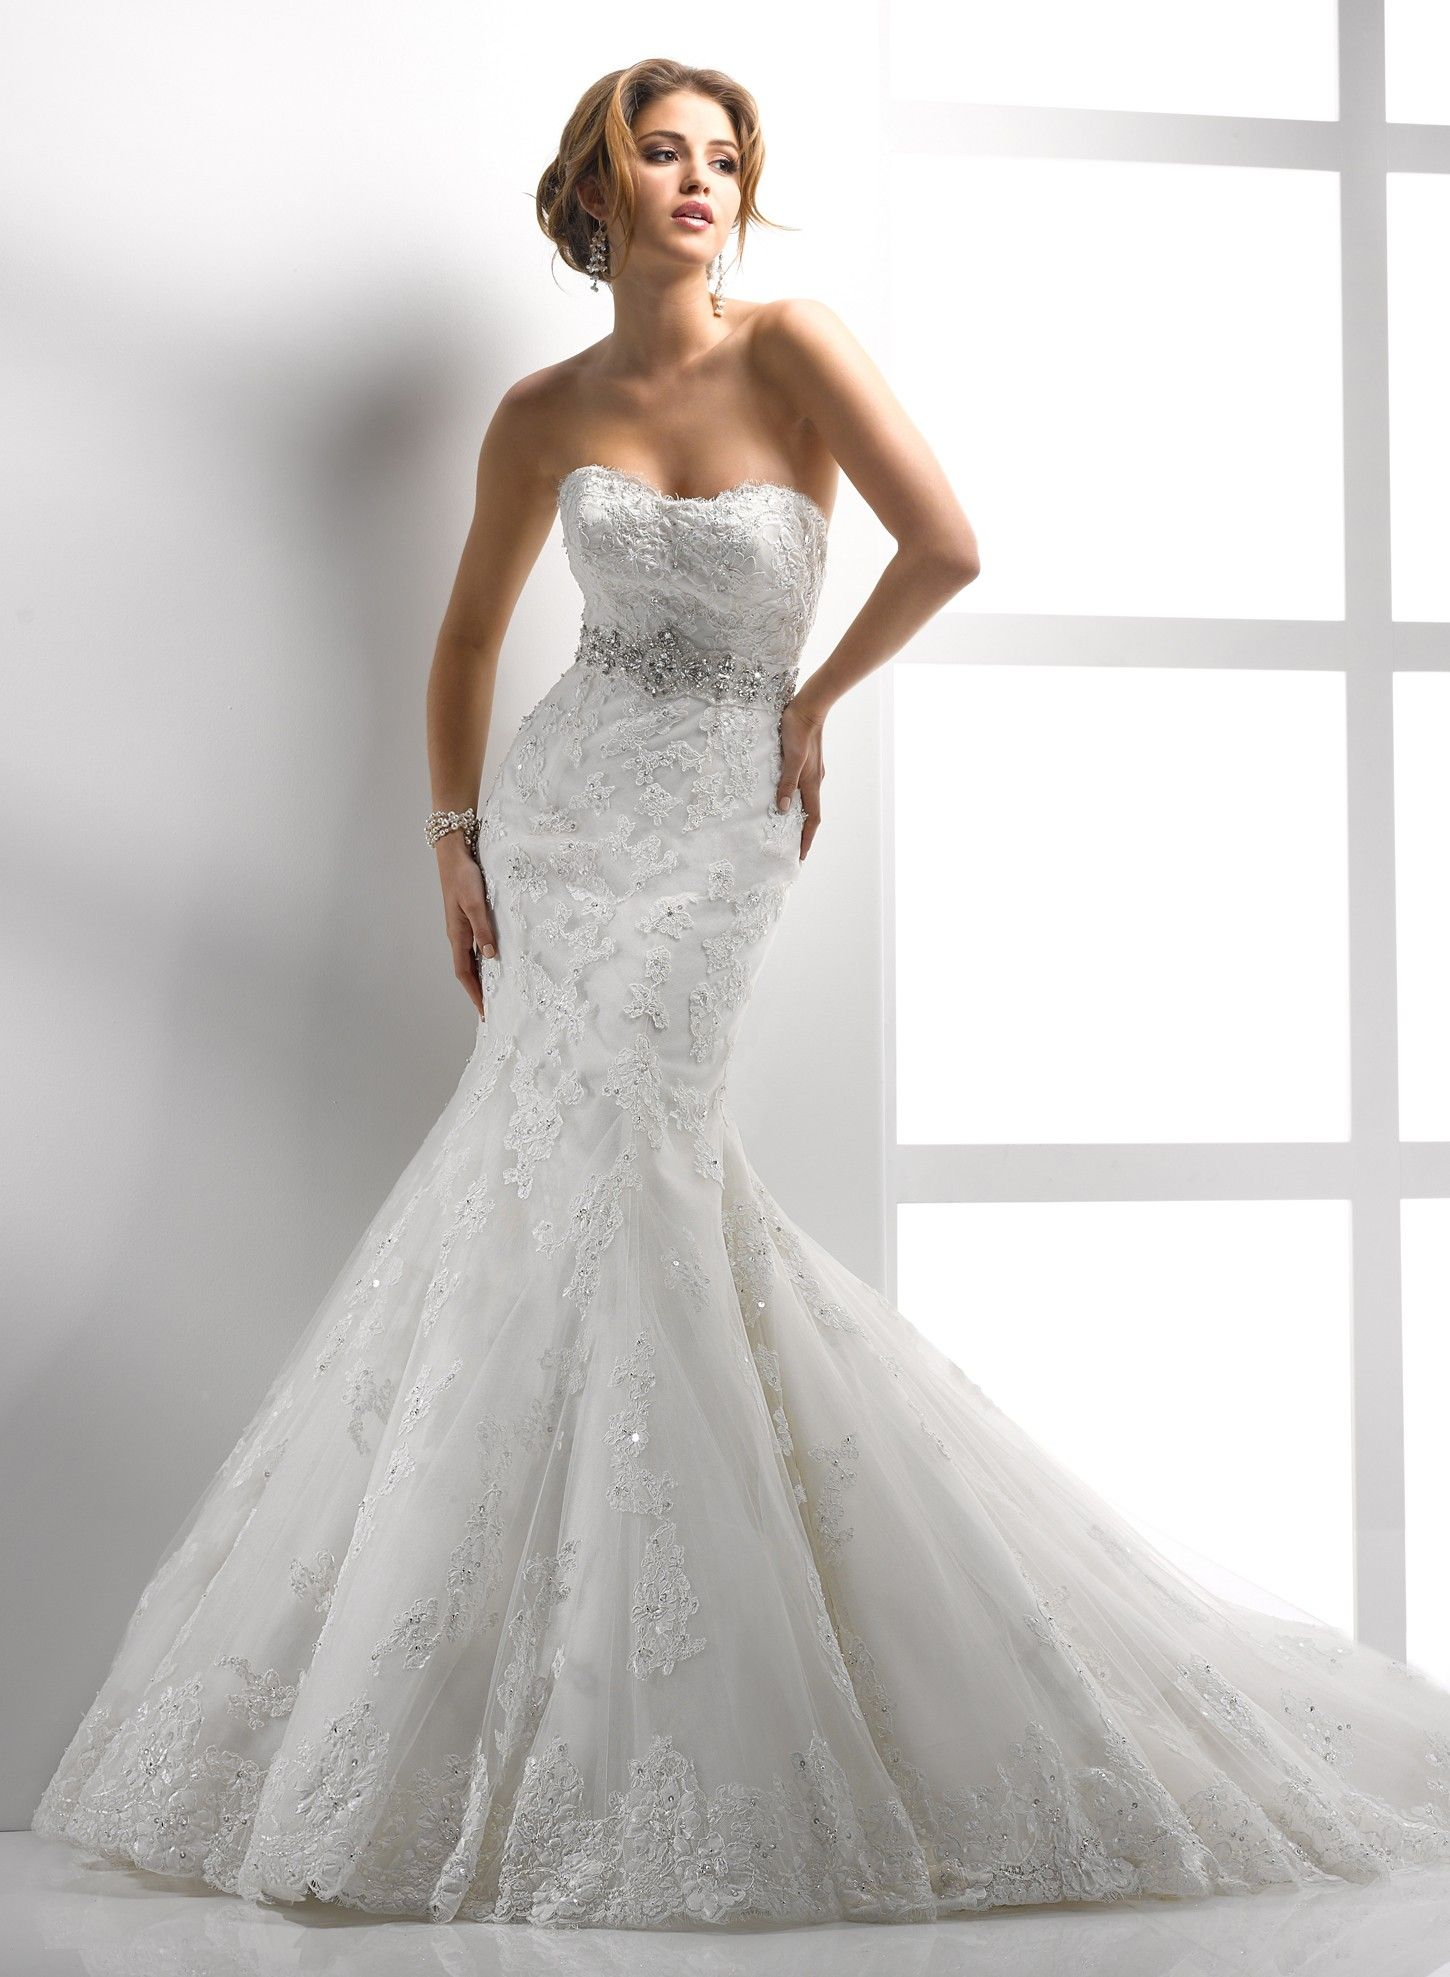 Embellished Corded Lace and Tulle Strapless Scoop Neckline Mermaid